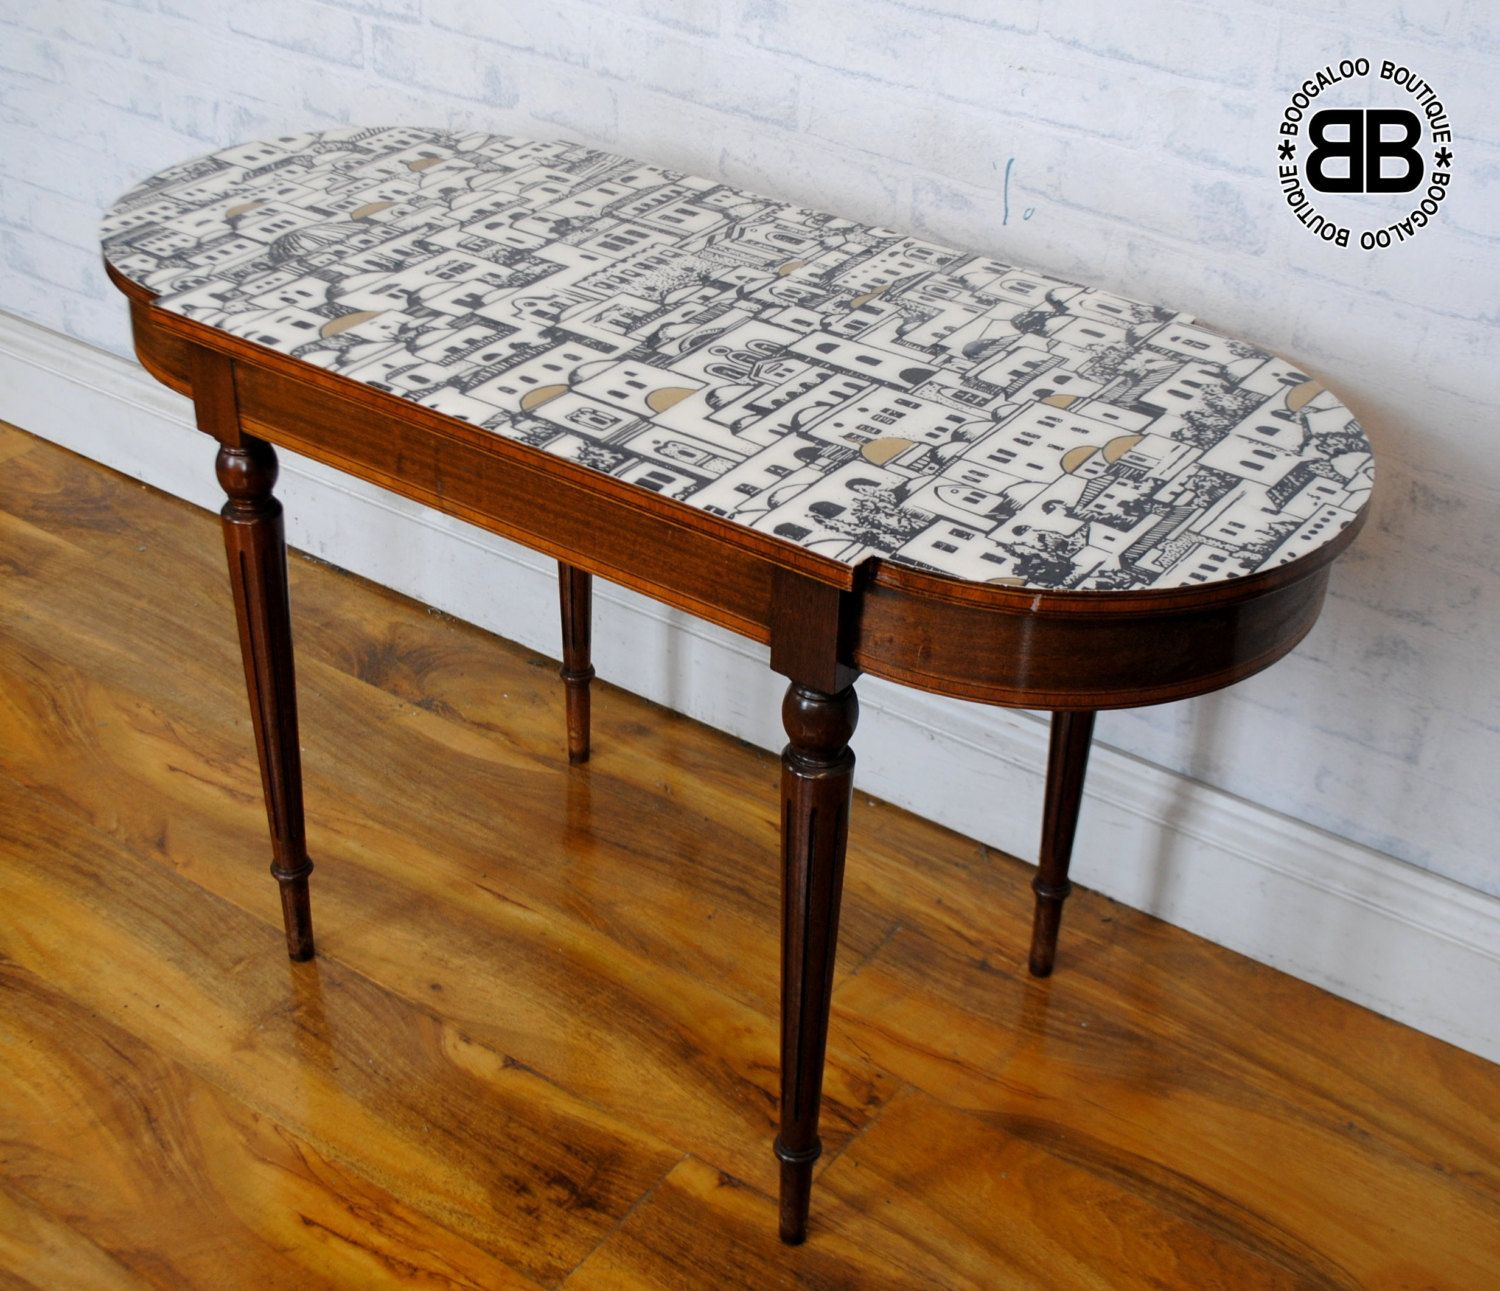 Stunning Upcycled Vintage coffee table with Fornasetti decoupage